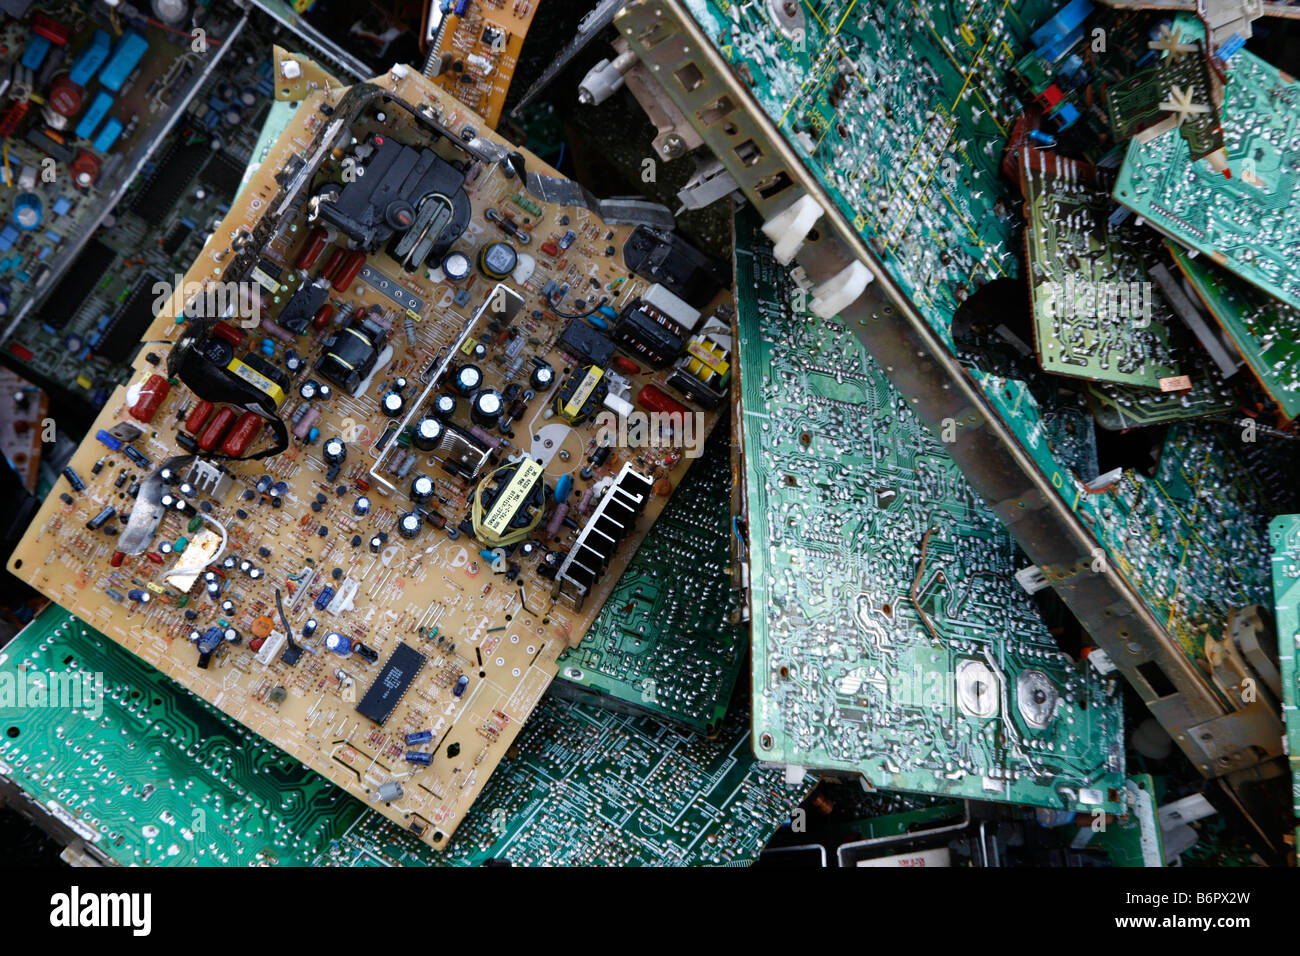 Old Computer Parts Artist Uses To Recreate Circuitboardclockjpg Used Stock Photos